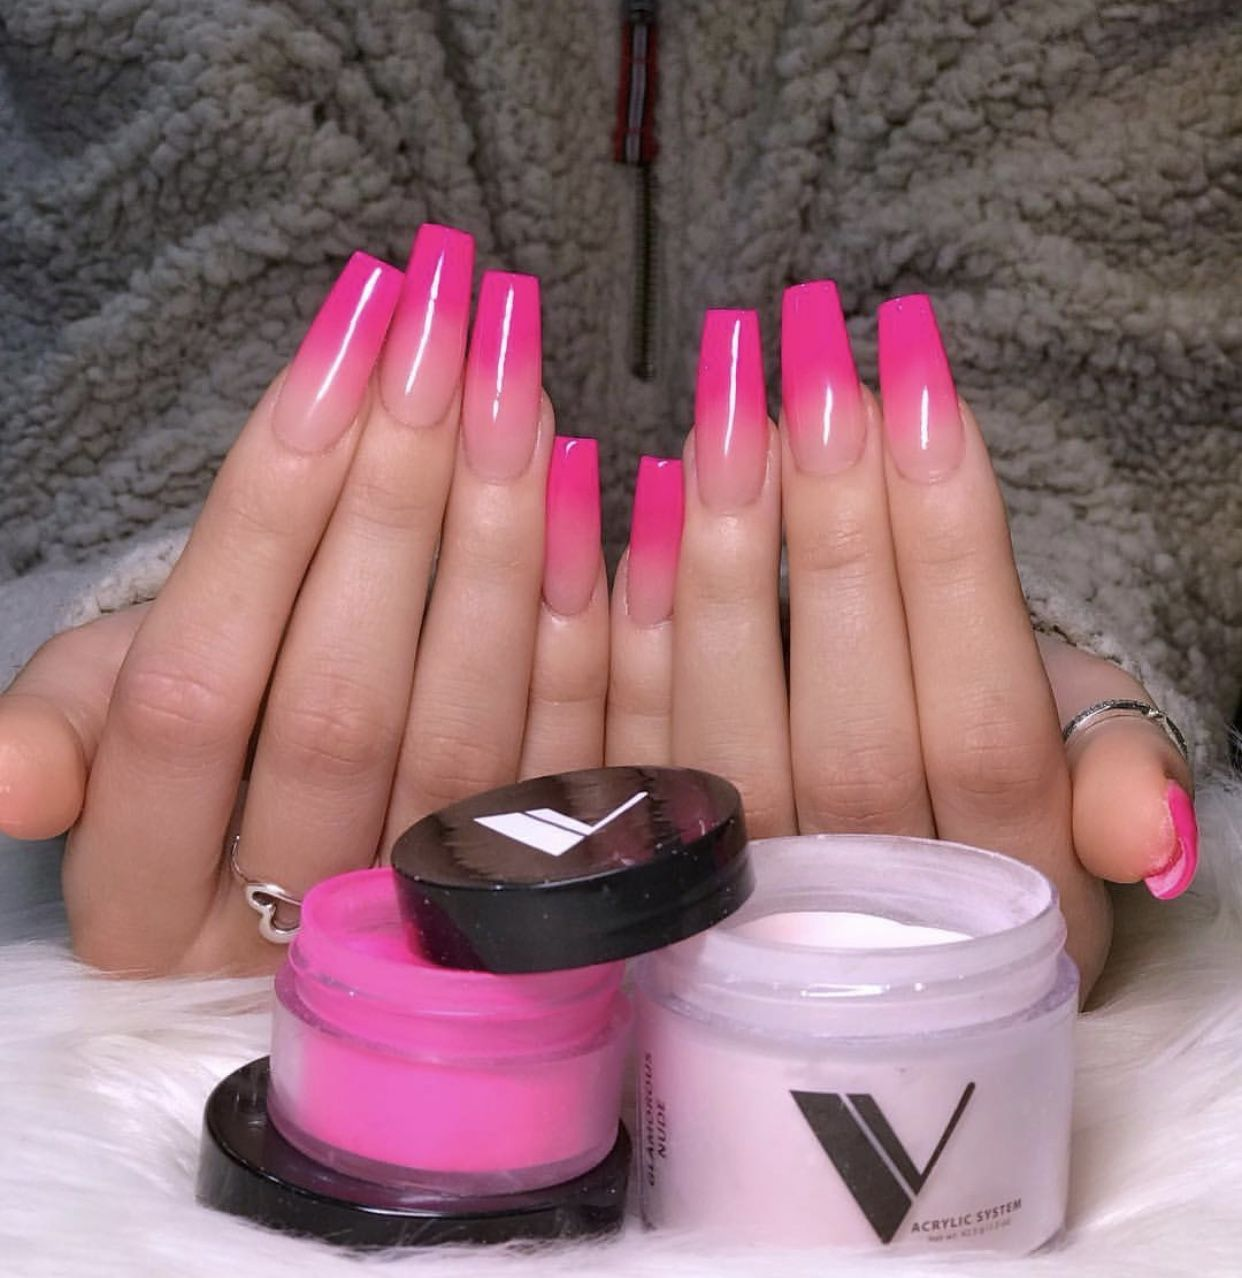 Pin By Nina Marie On Beauty Pink Tip Nails Pink Ombre Nails Ombre Nails